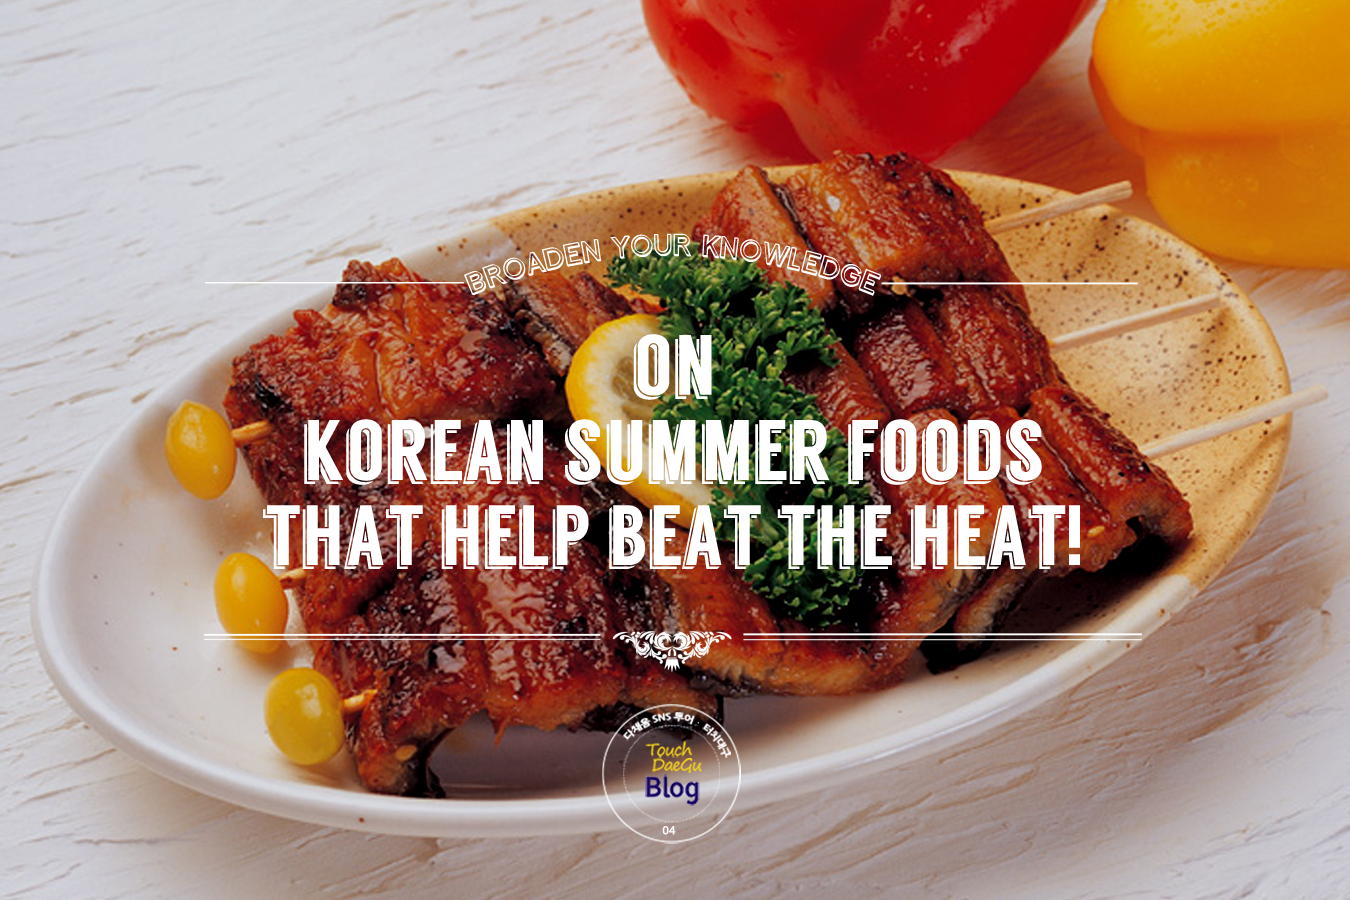 Healthy Korean summer foods